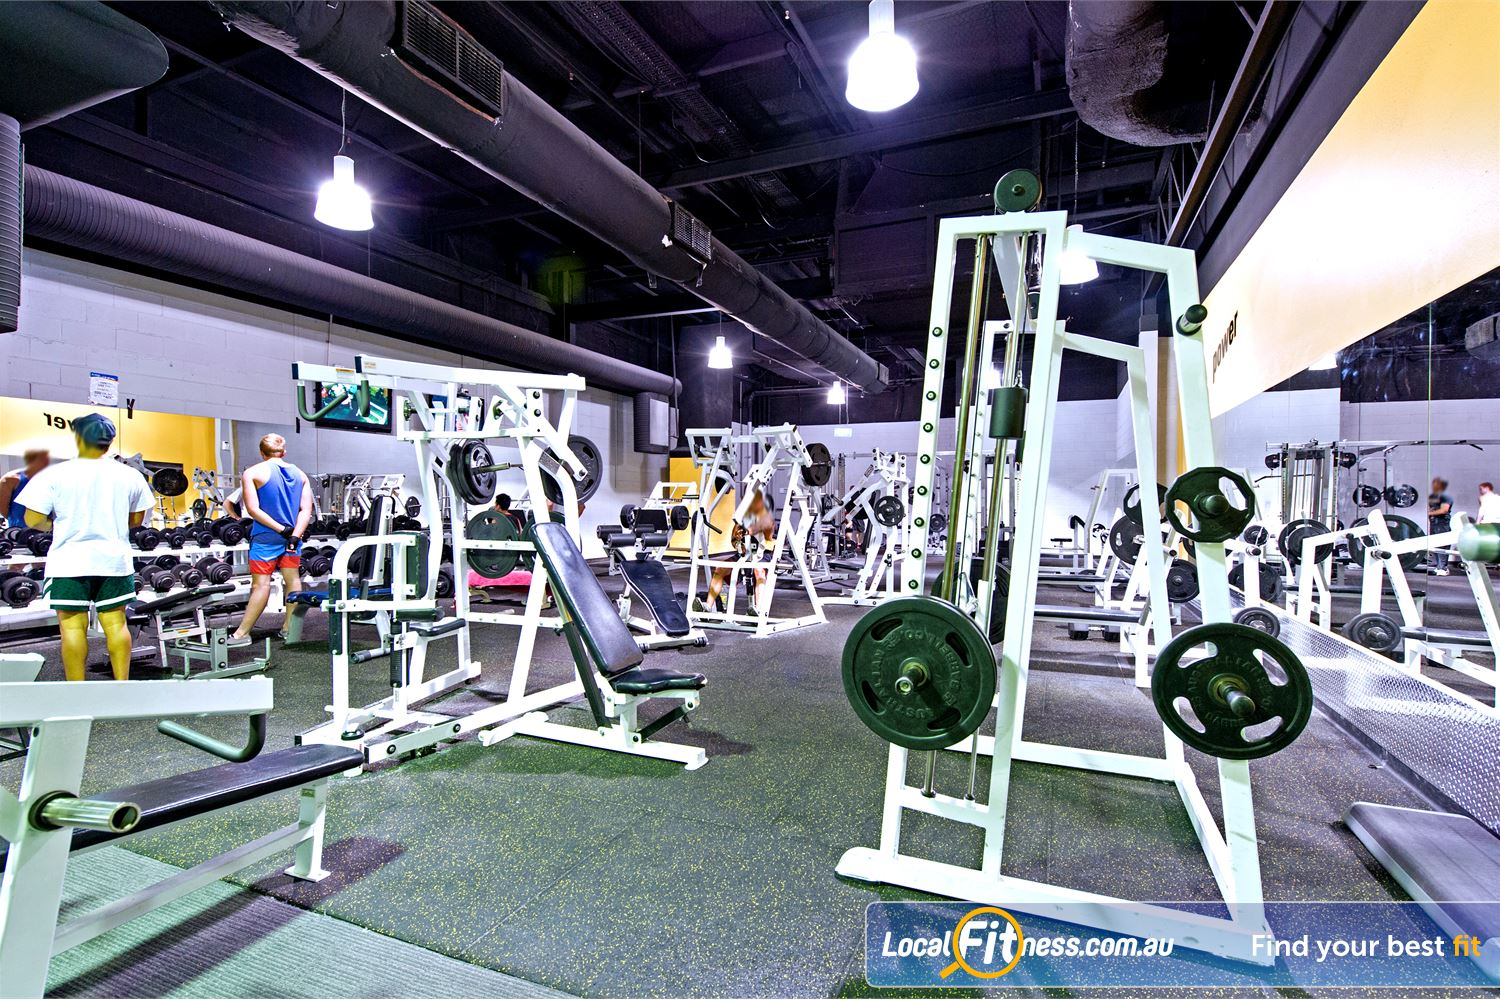 Vibe Health Clubs Blacktown Full range of dumbbells, barbells and benches.